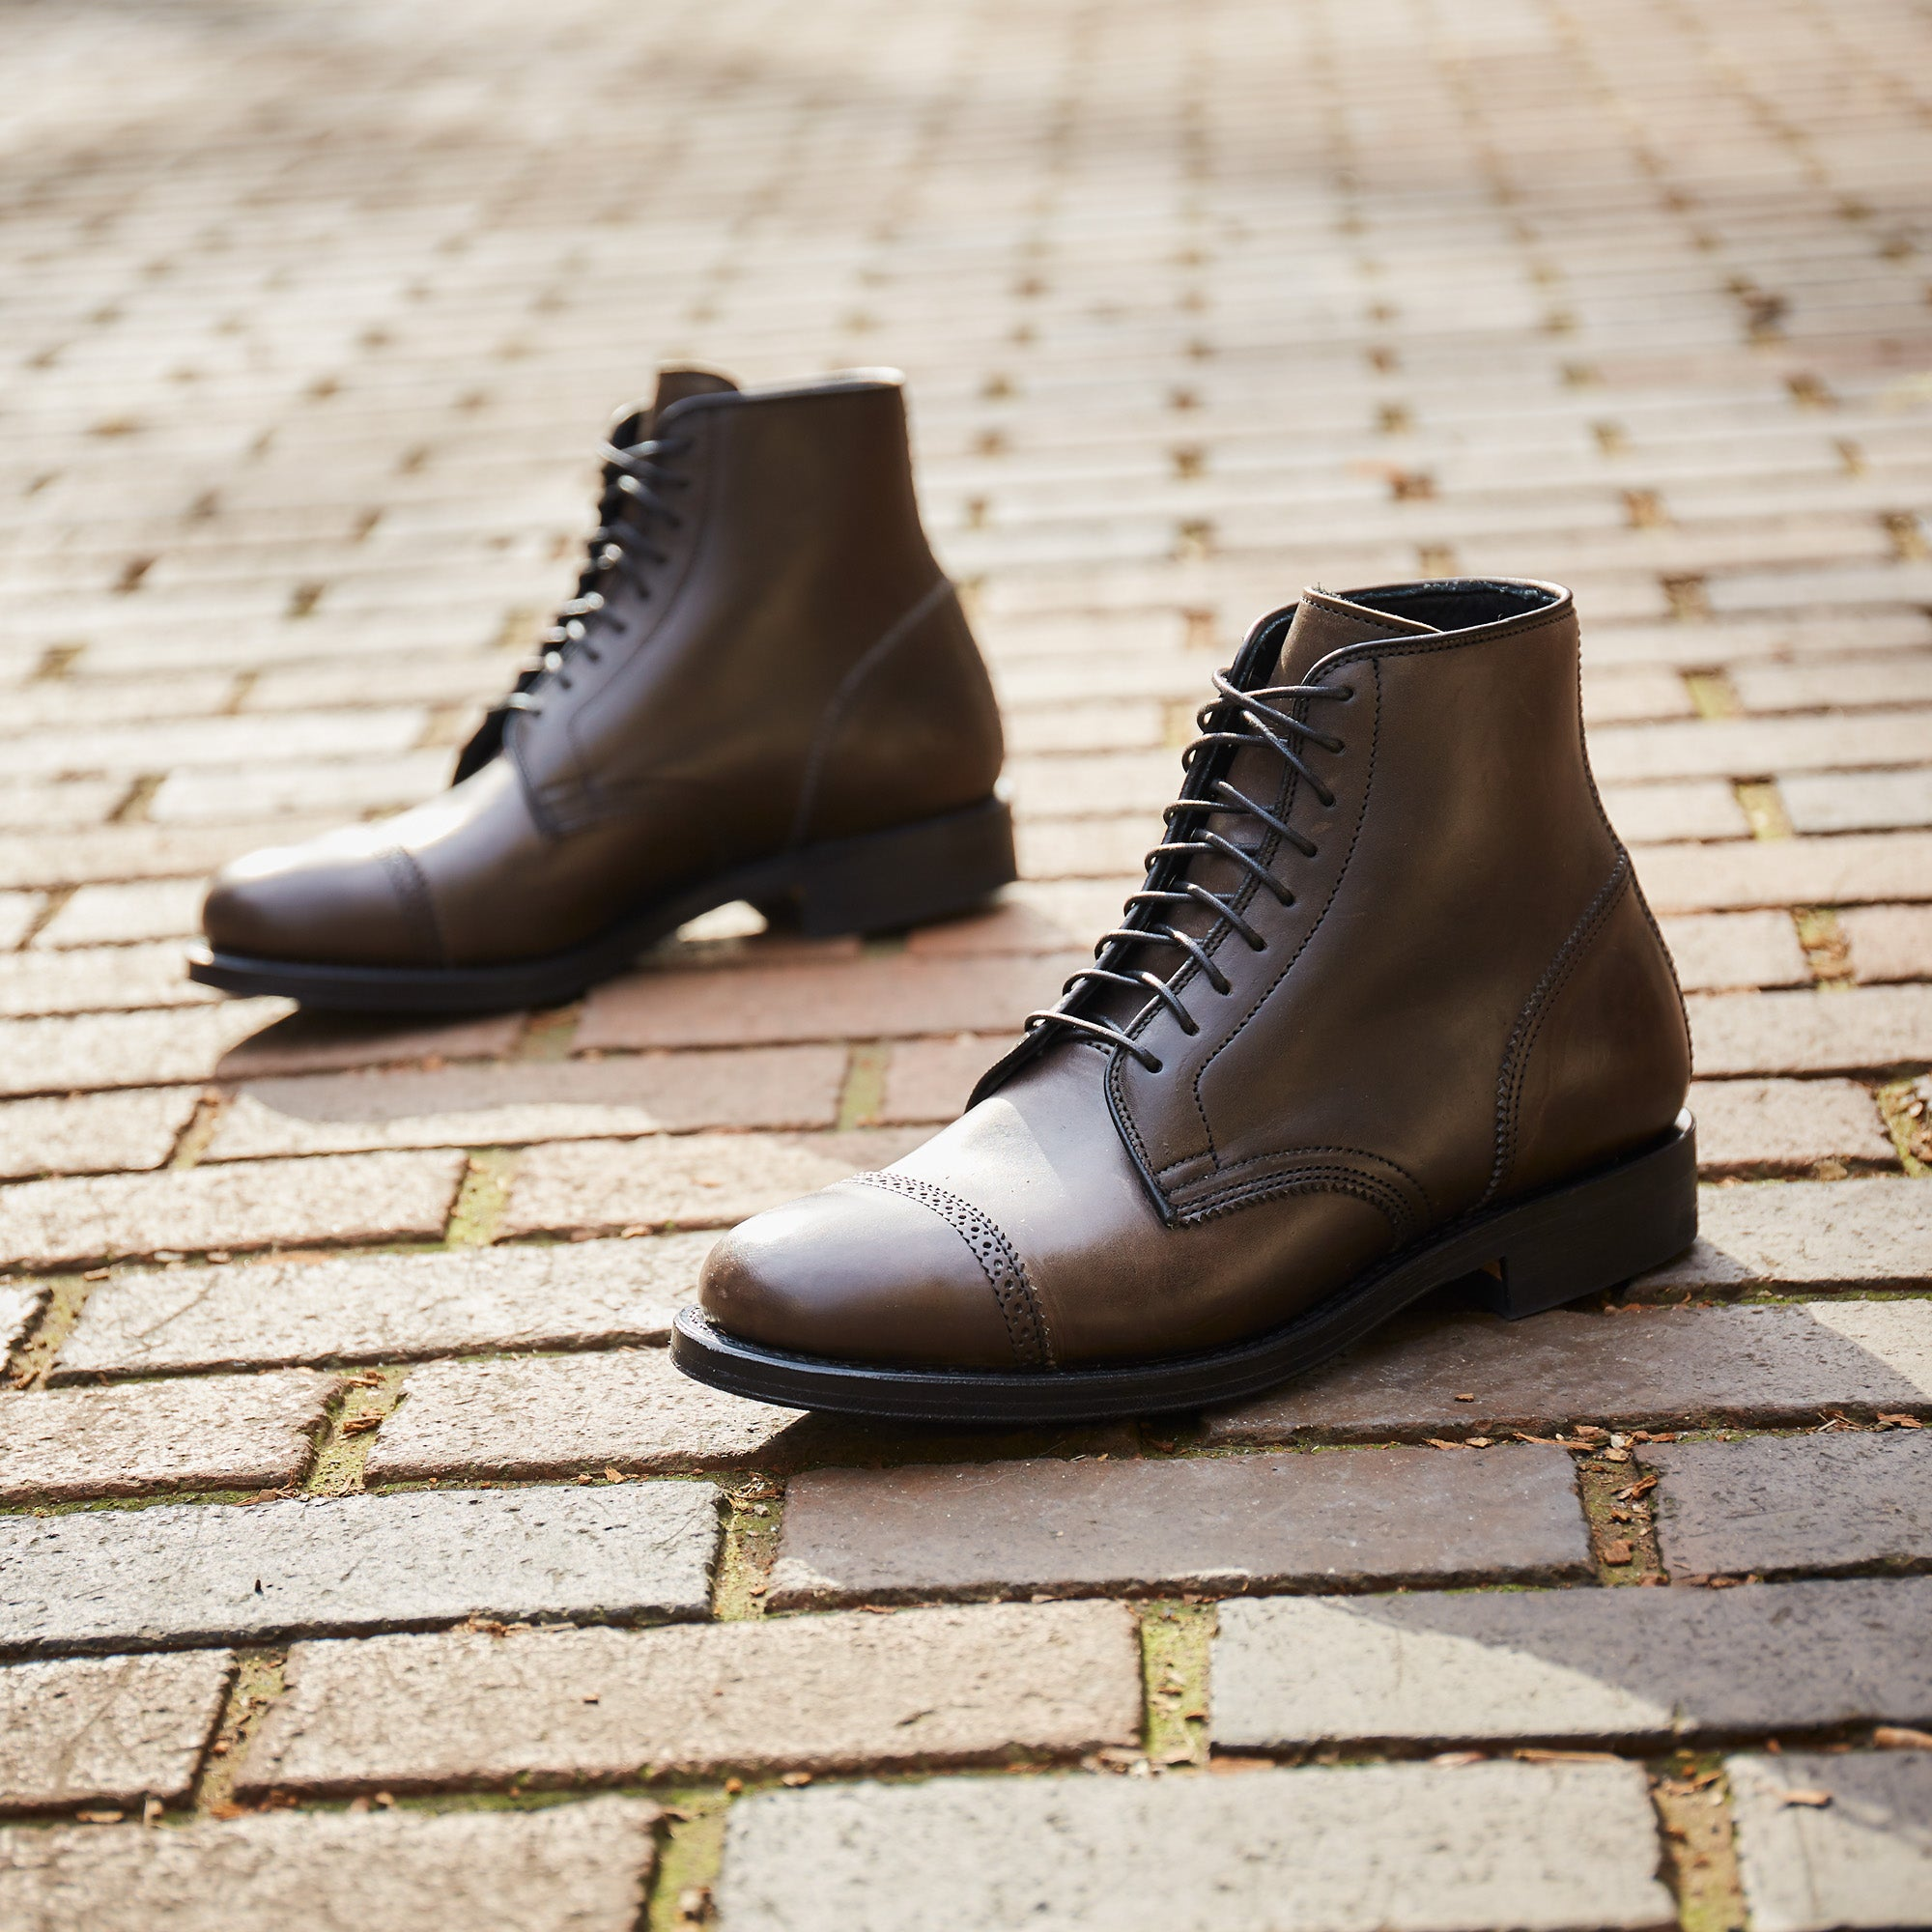 VIBERG X Division Road SHELBY SHARP BROGUE BOOT